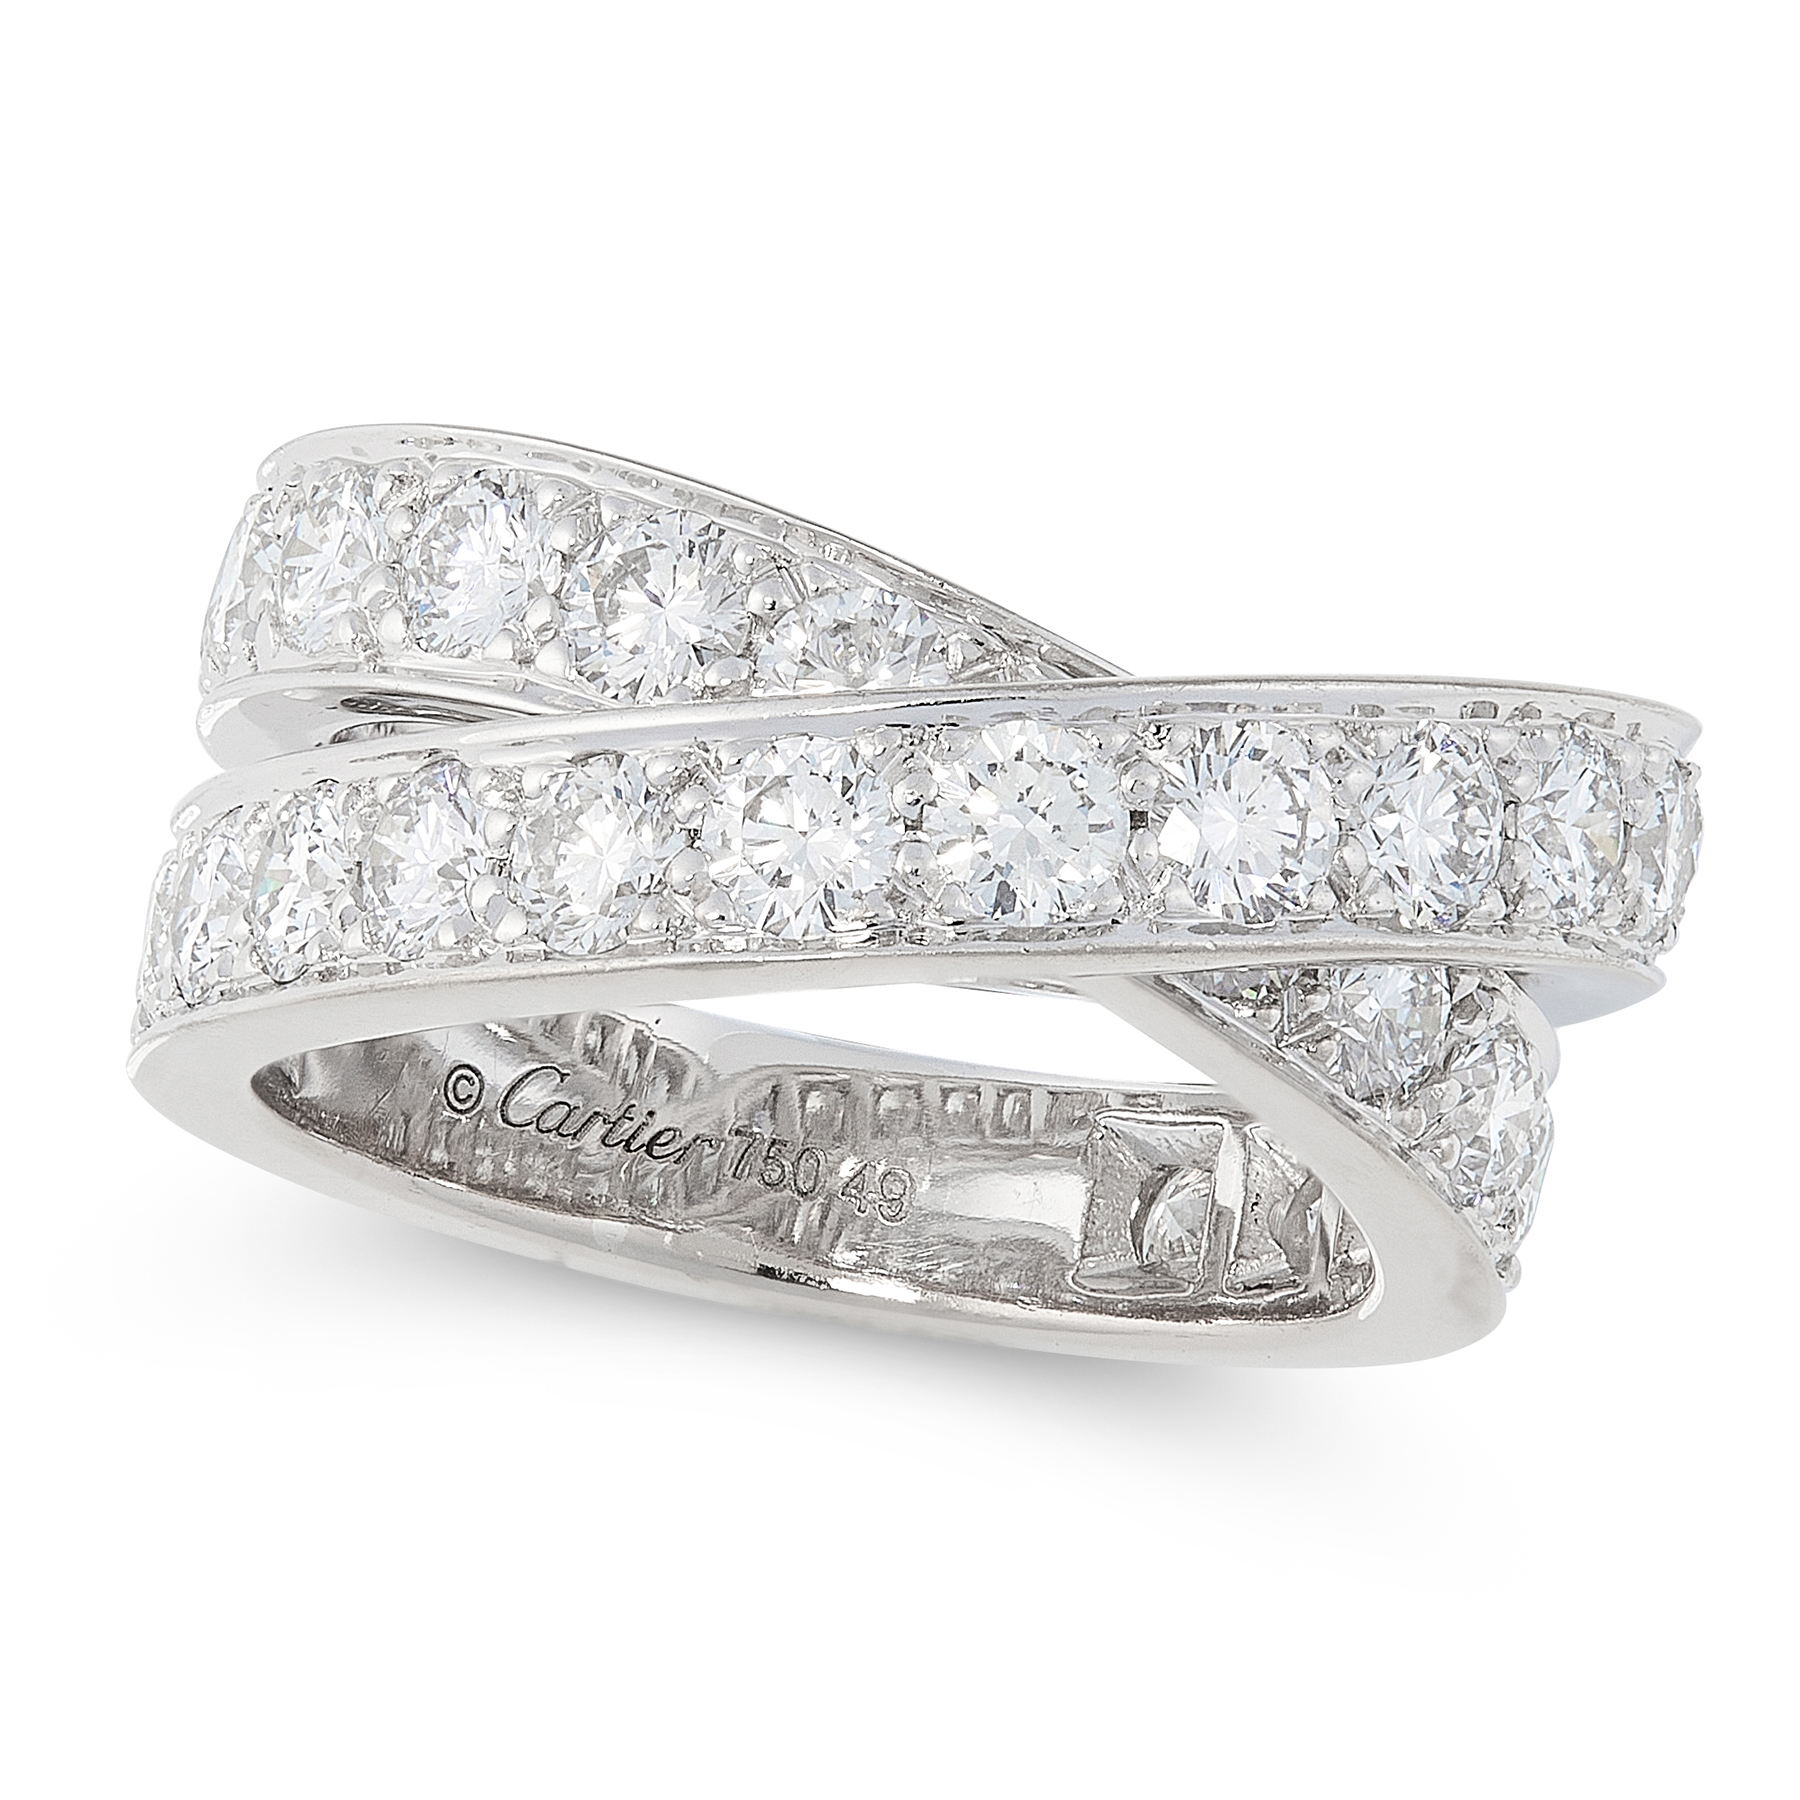 A NOUVELLE VAGUE DIAMOND CROSSOVER RING, CARTIER in 18ct white gold, designed as two overlapping